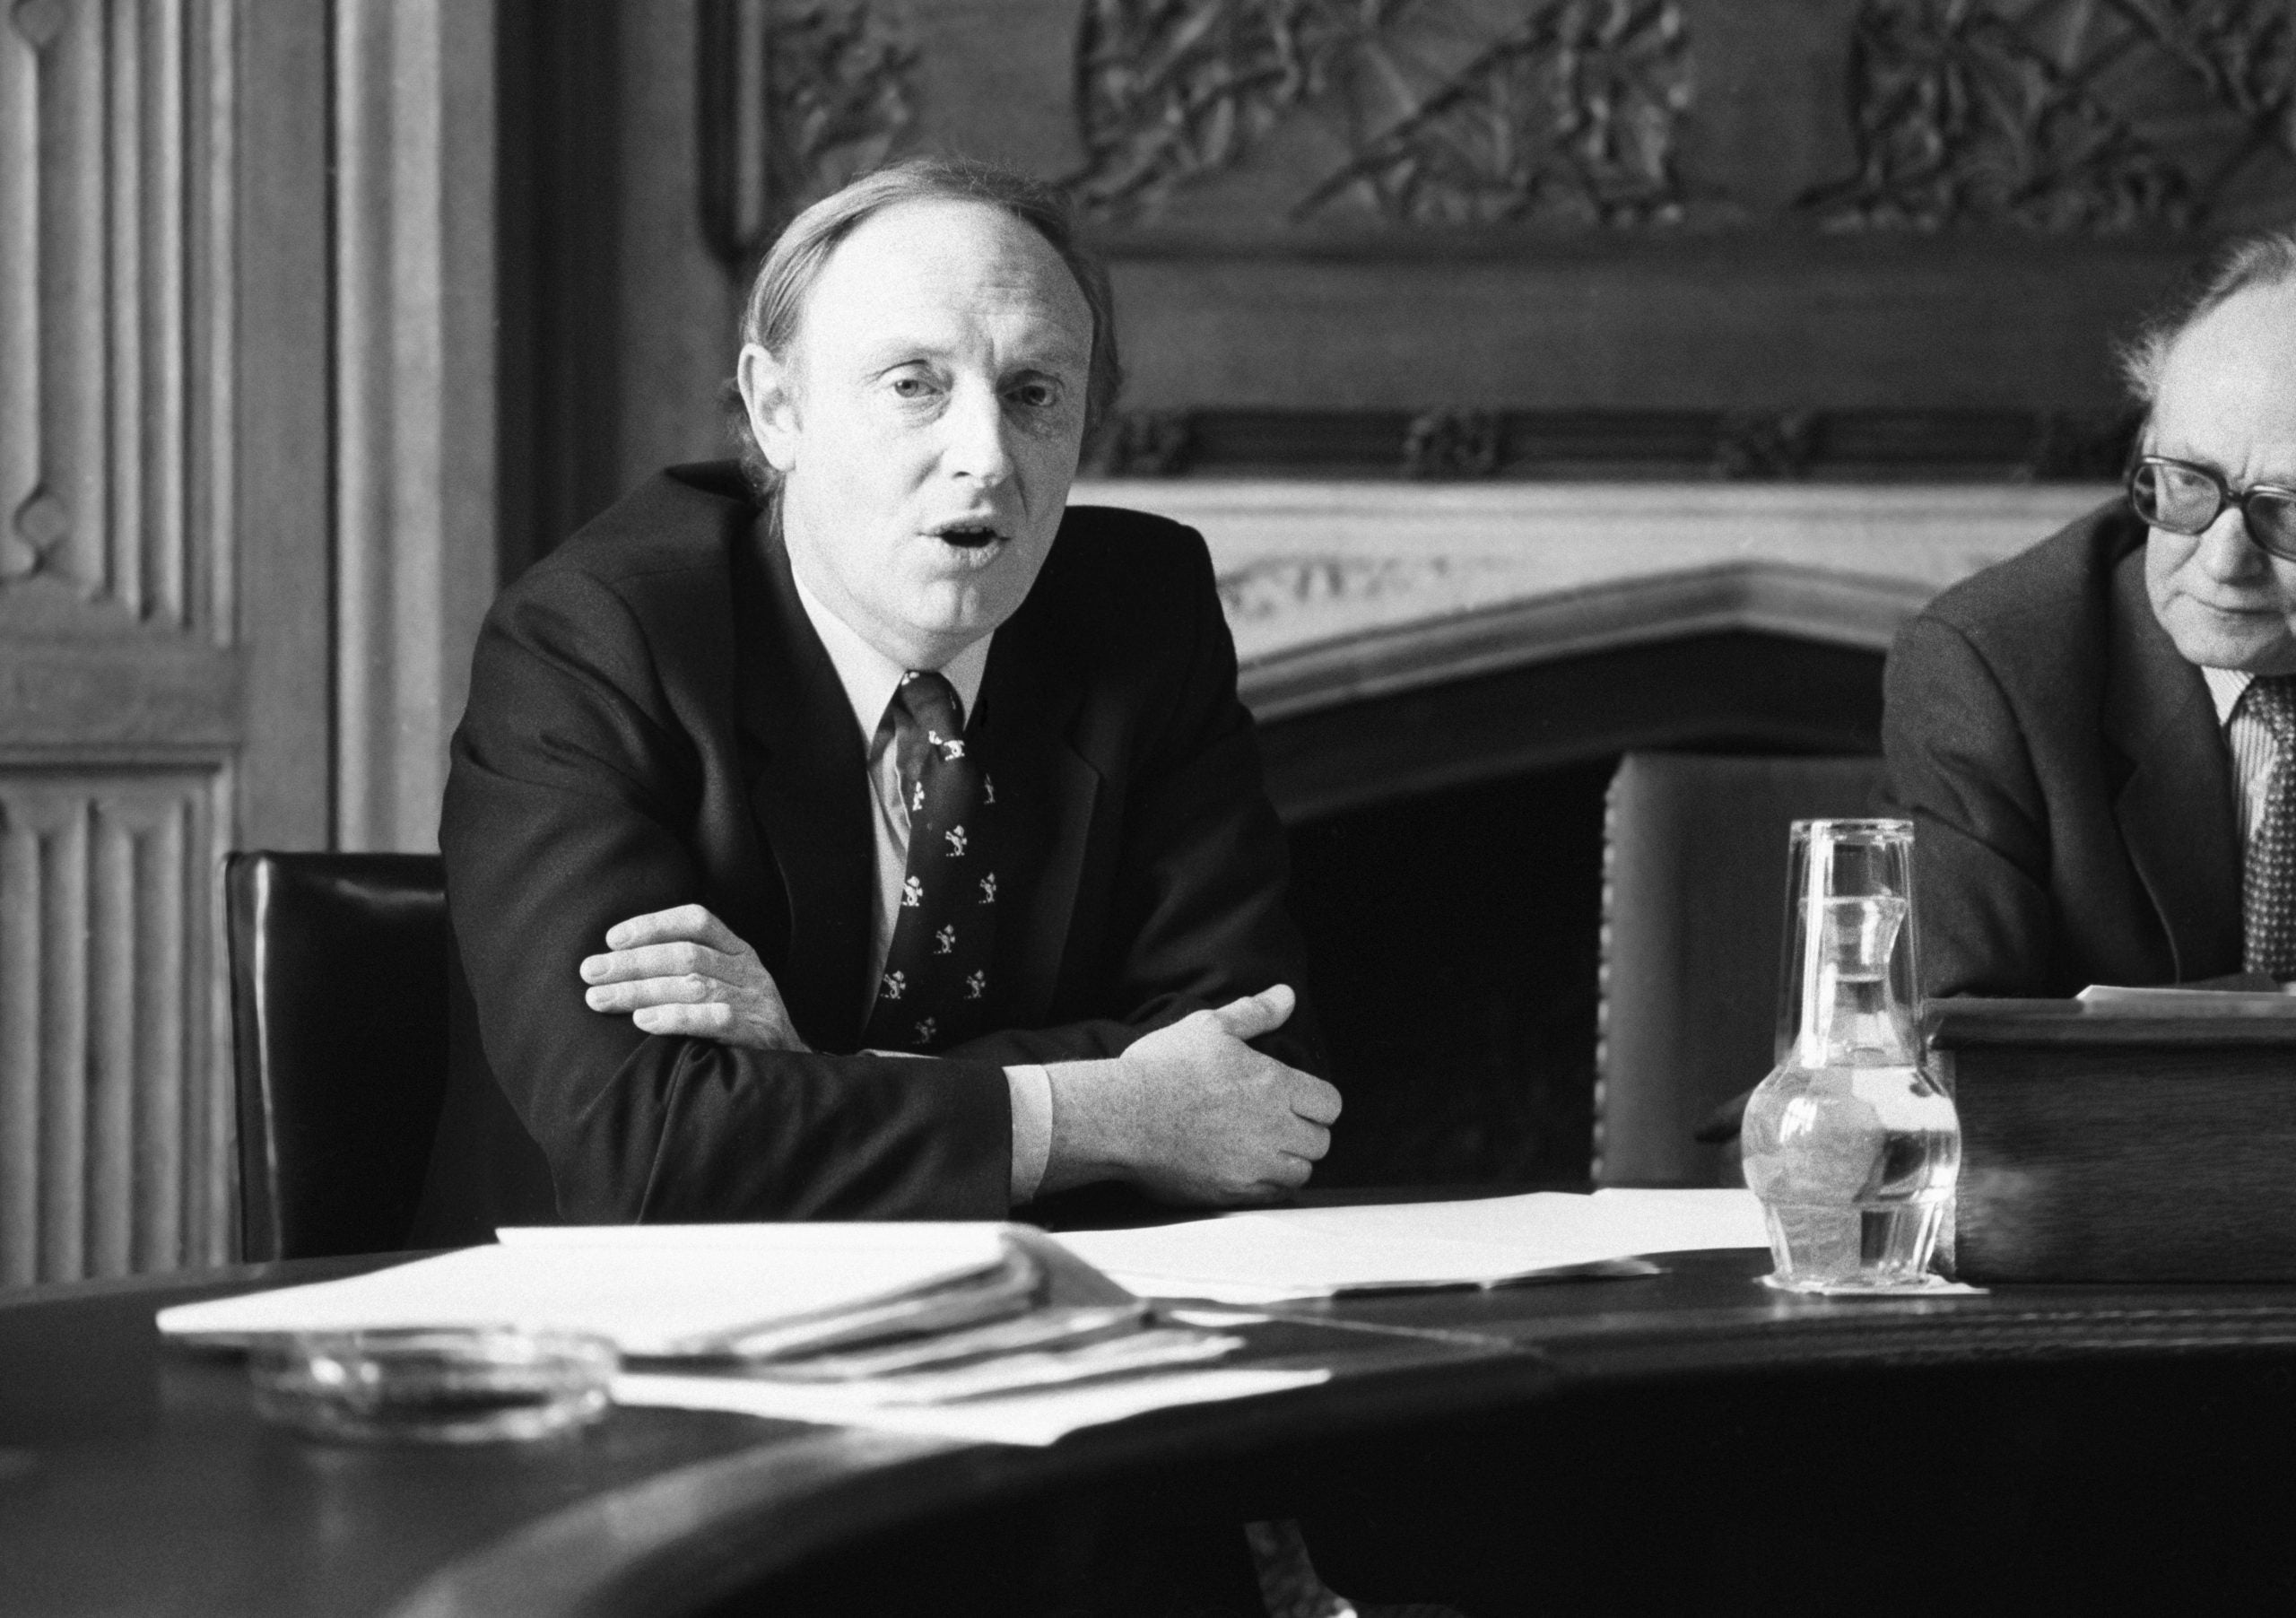 Neil Kinnock: When Corbyn wanted me deposed, I sought nominations from MPs